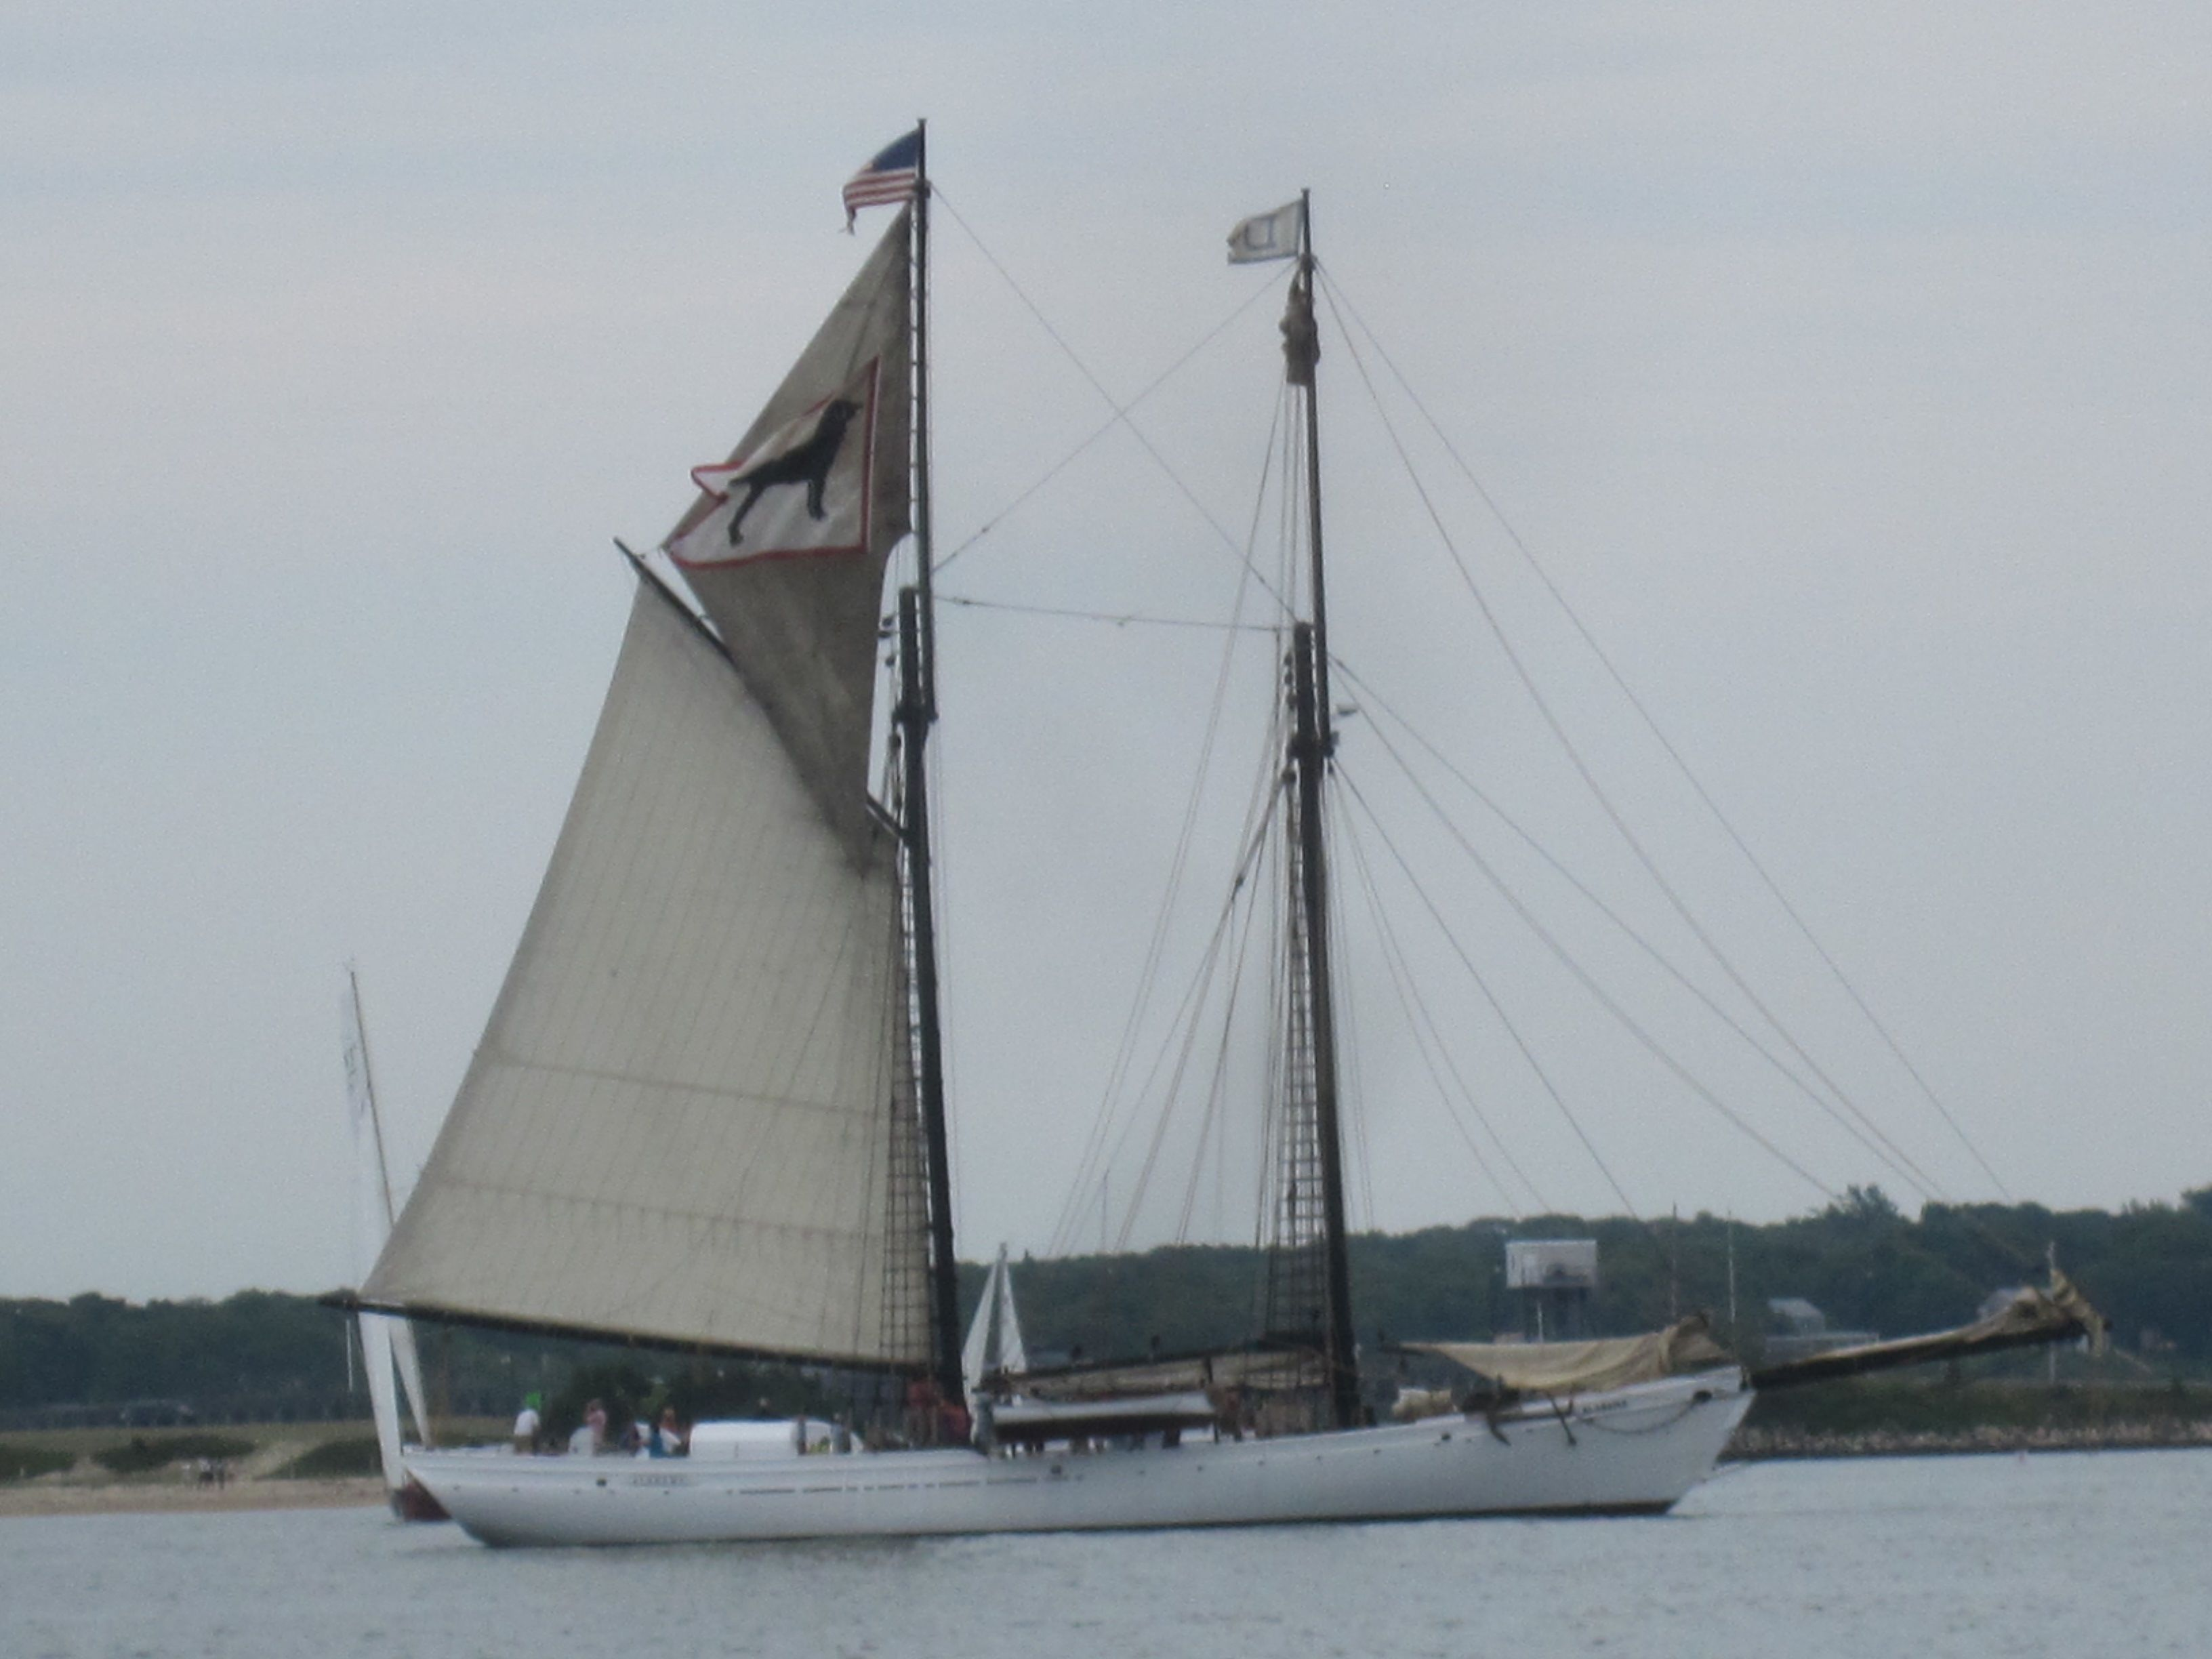 Vineyard Haven Regatta Black Dog Sailboat Martha's